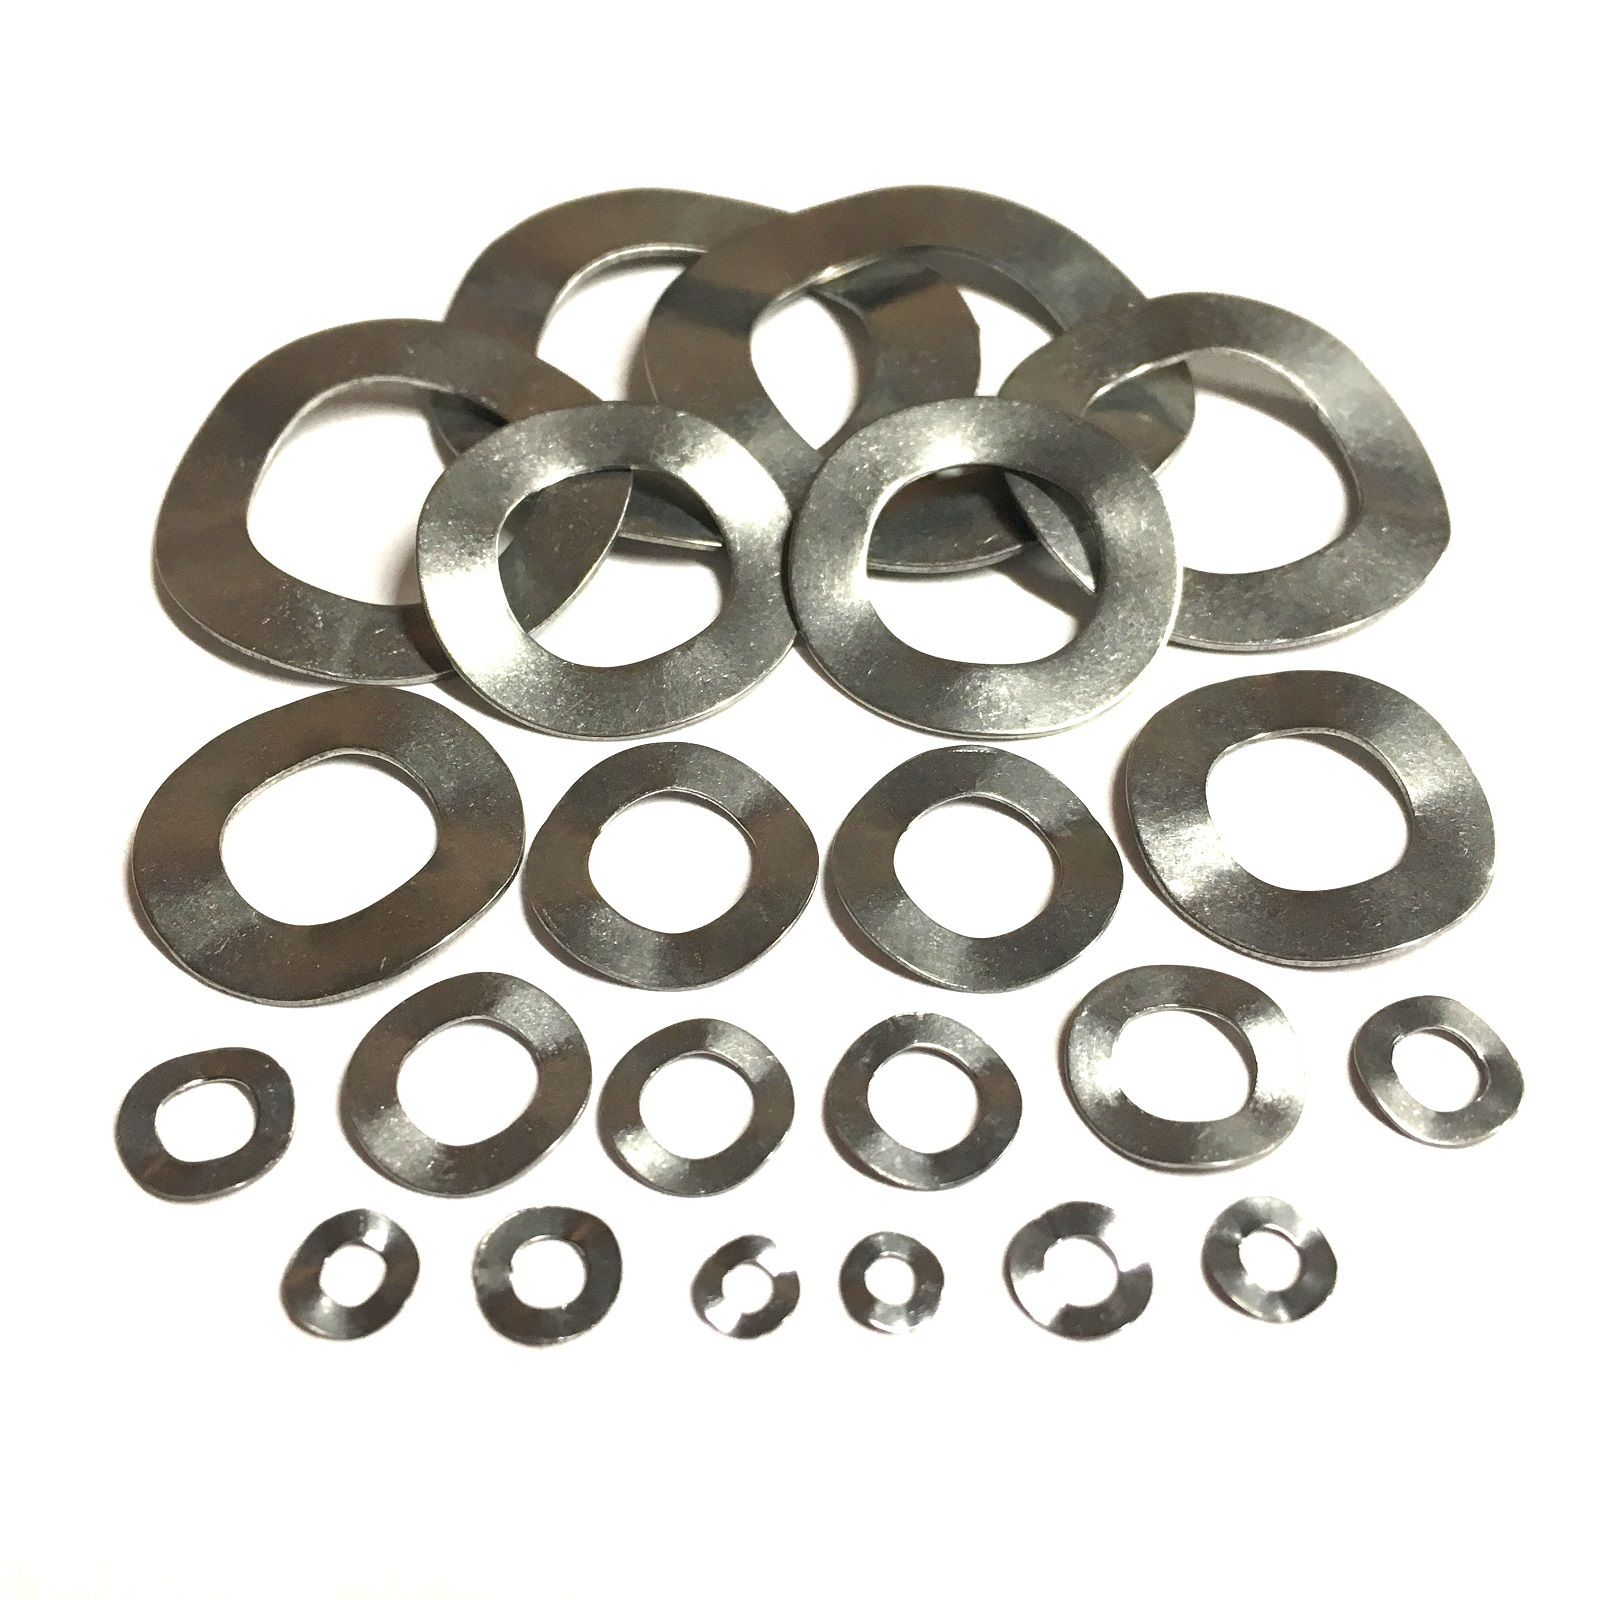 M3.5 A2 STAINLESS STEEL WAVE CRINKLE WASHERS